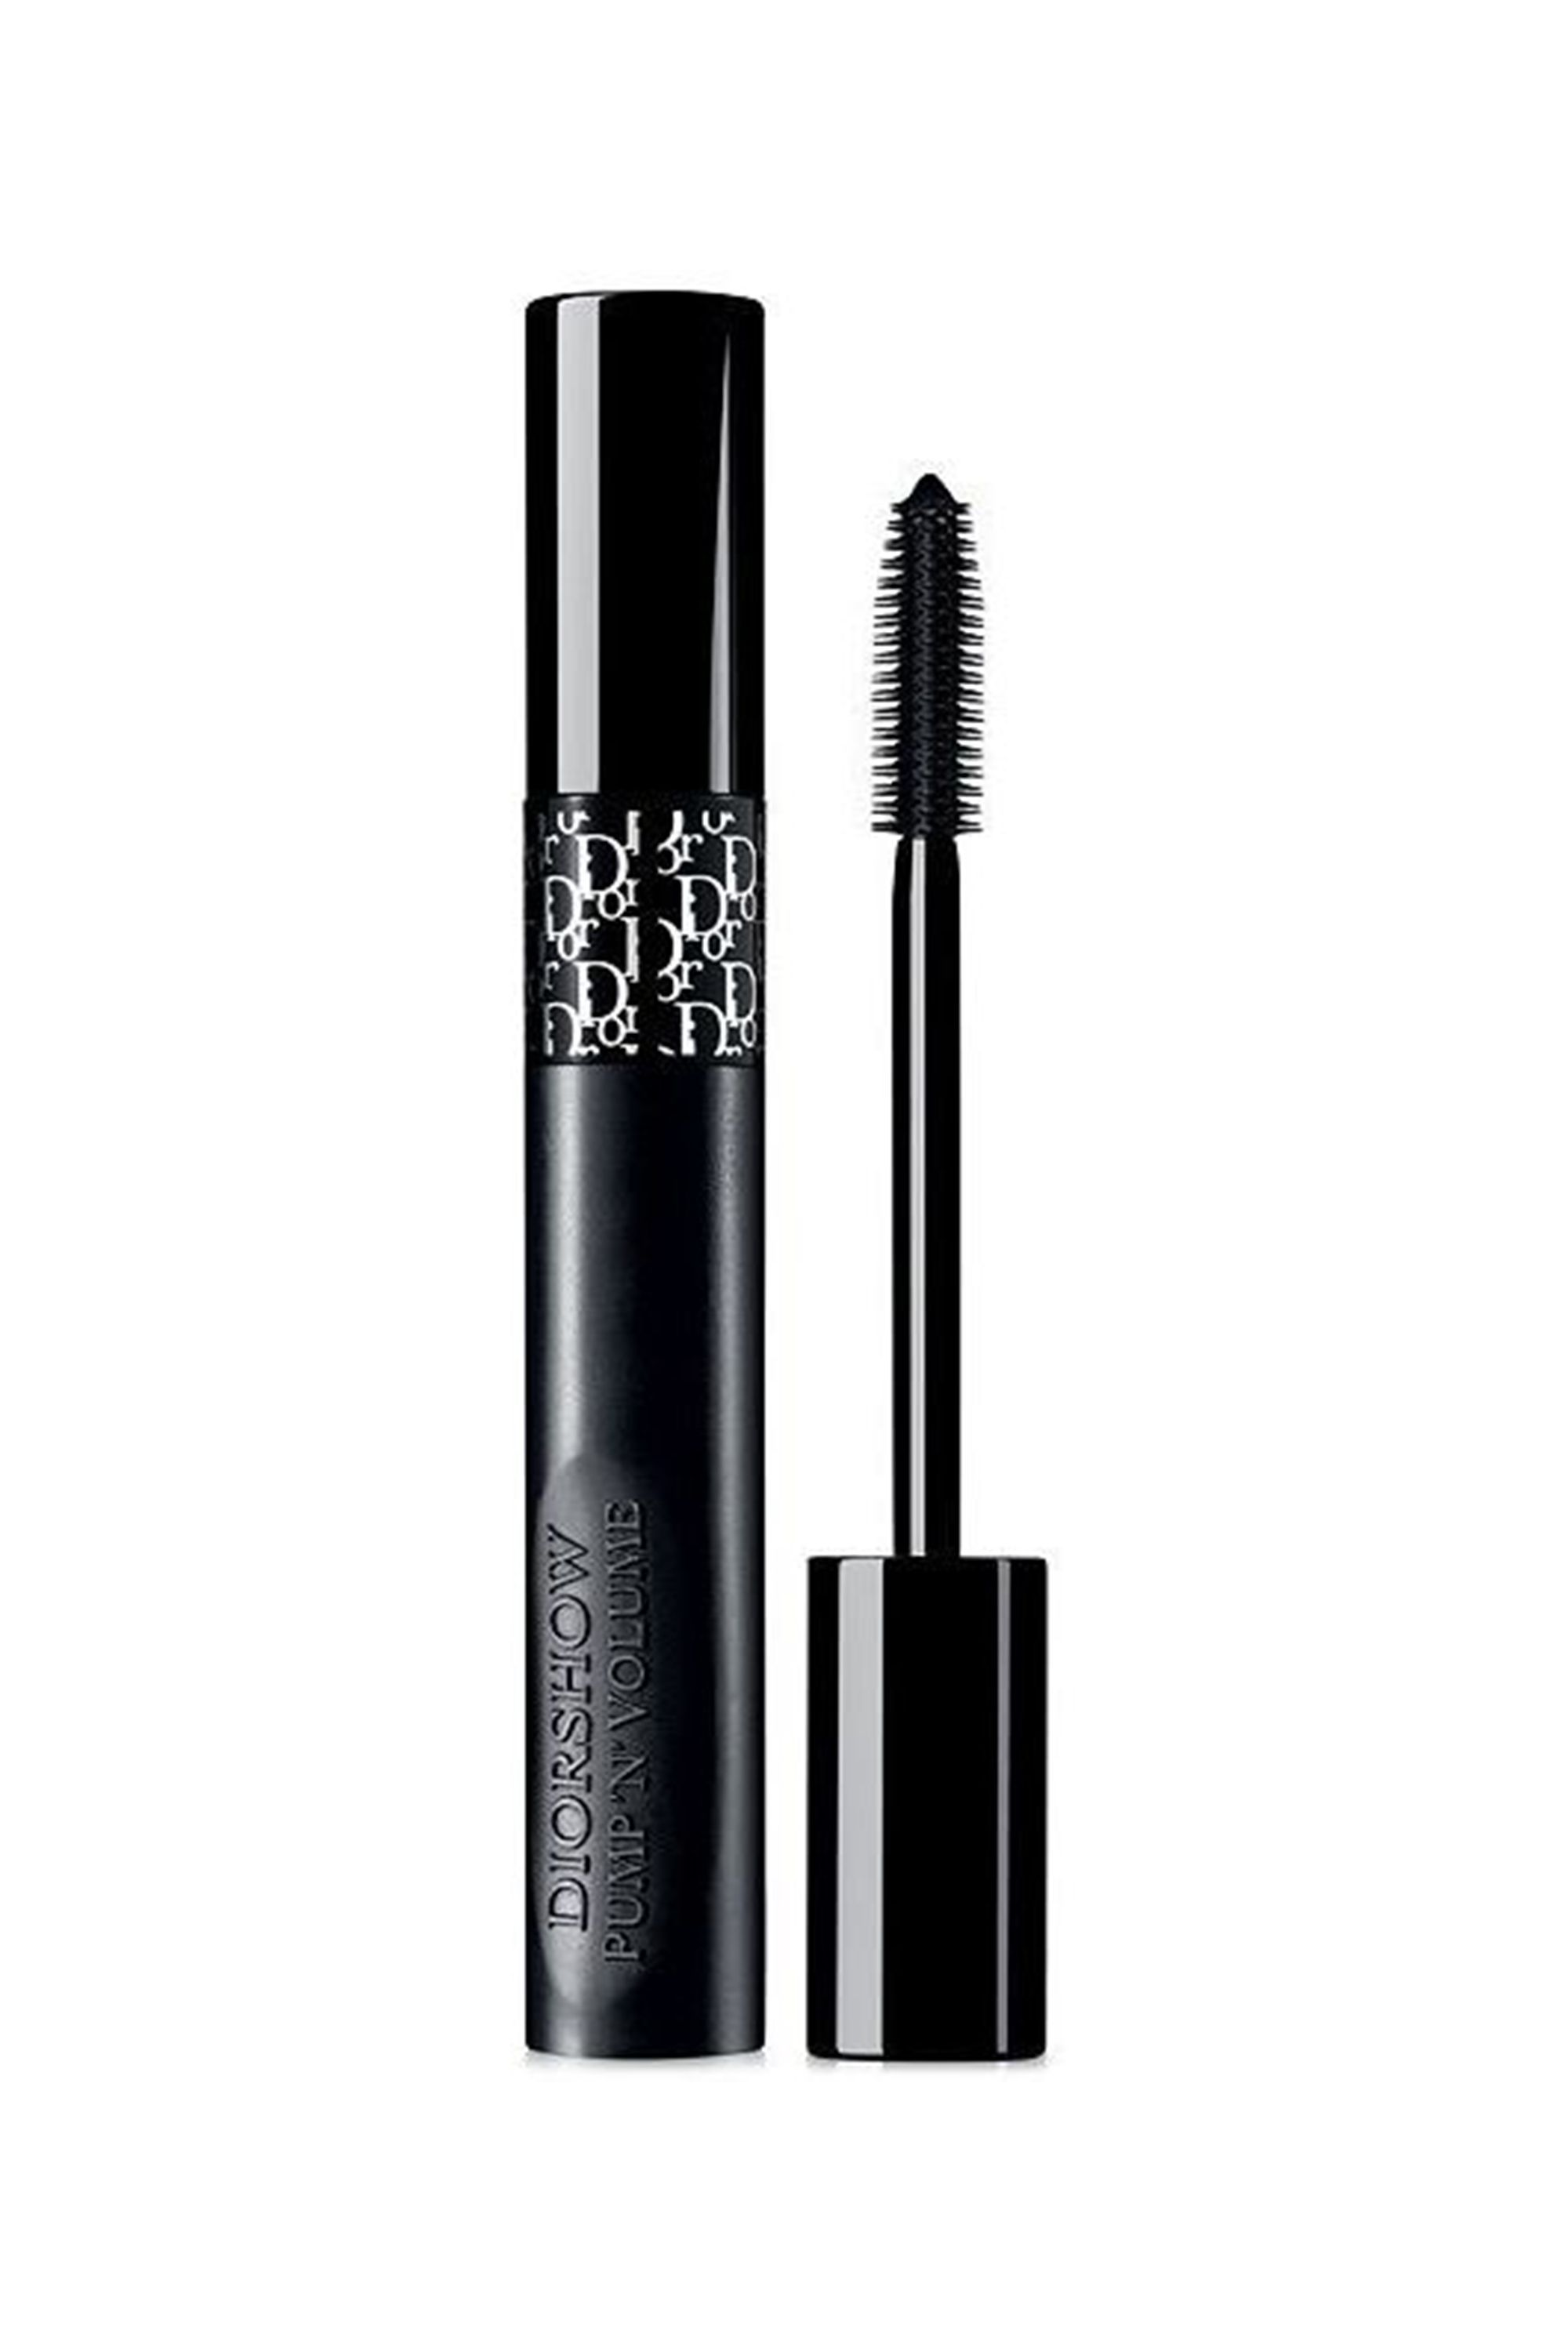 """Diorshow Pump 'N' Volume HD Mascara Dior sephora.com $29.50 SHOP NOW """"I can't live without lashes and this mascara has a buildable formula that goes from bambi to bombshell fast. It also manages to coat my lashes without getting everywhere and doesn't leave any black residue by end of day."""" — Ariana Yaptangco, Social Media Editor"""